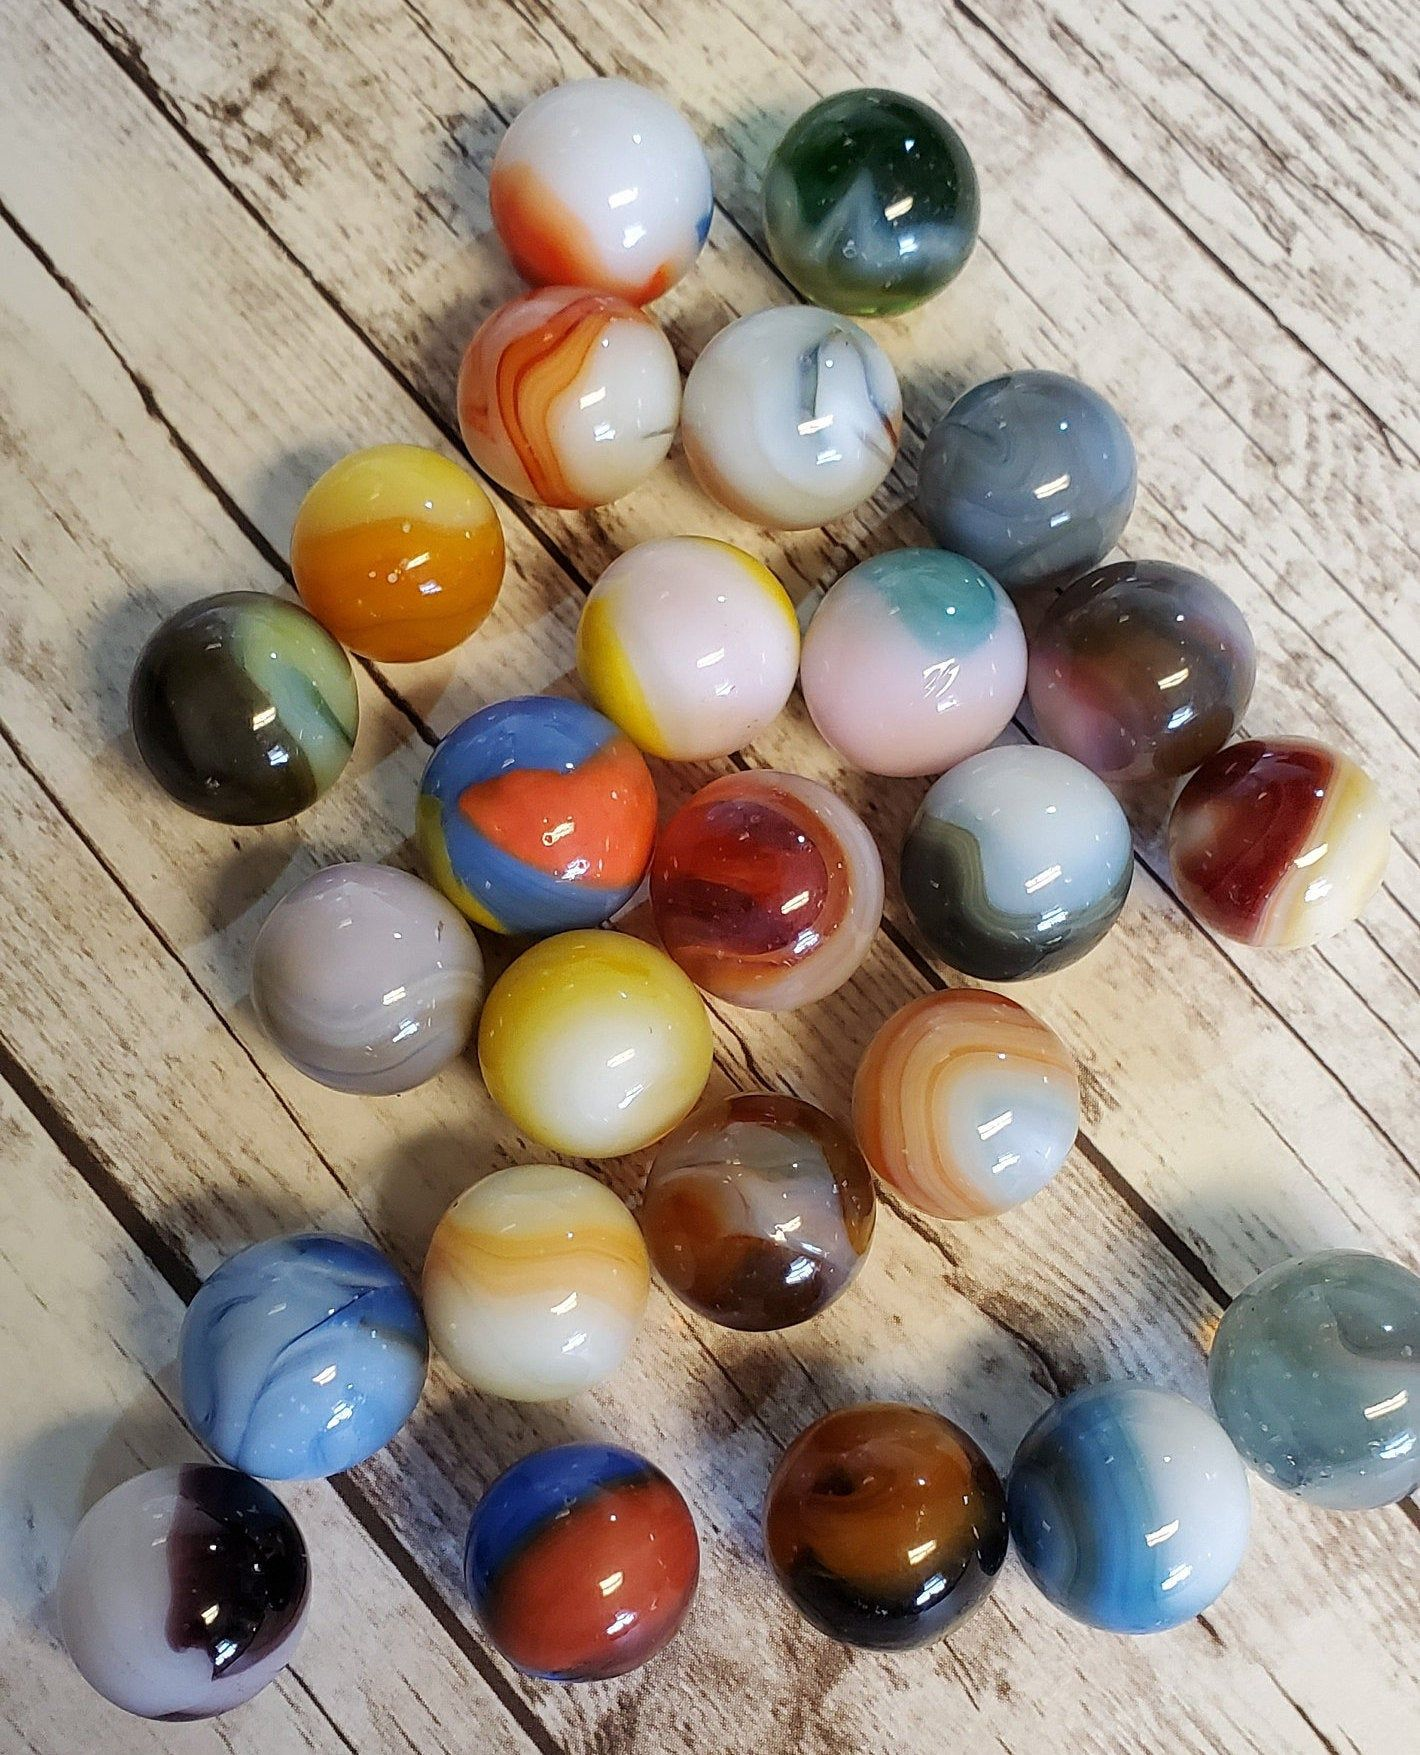 Lot Of 25 Marbles Glass Marbles Decorative Marbles Craft Marbles Toys And Games Collectible Marbles Lot 50 Marble Toys Marble Decor Glass Marbles